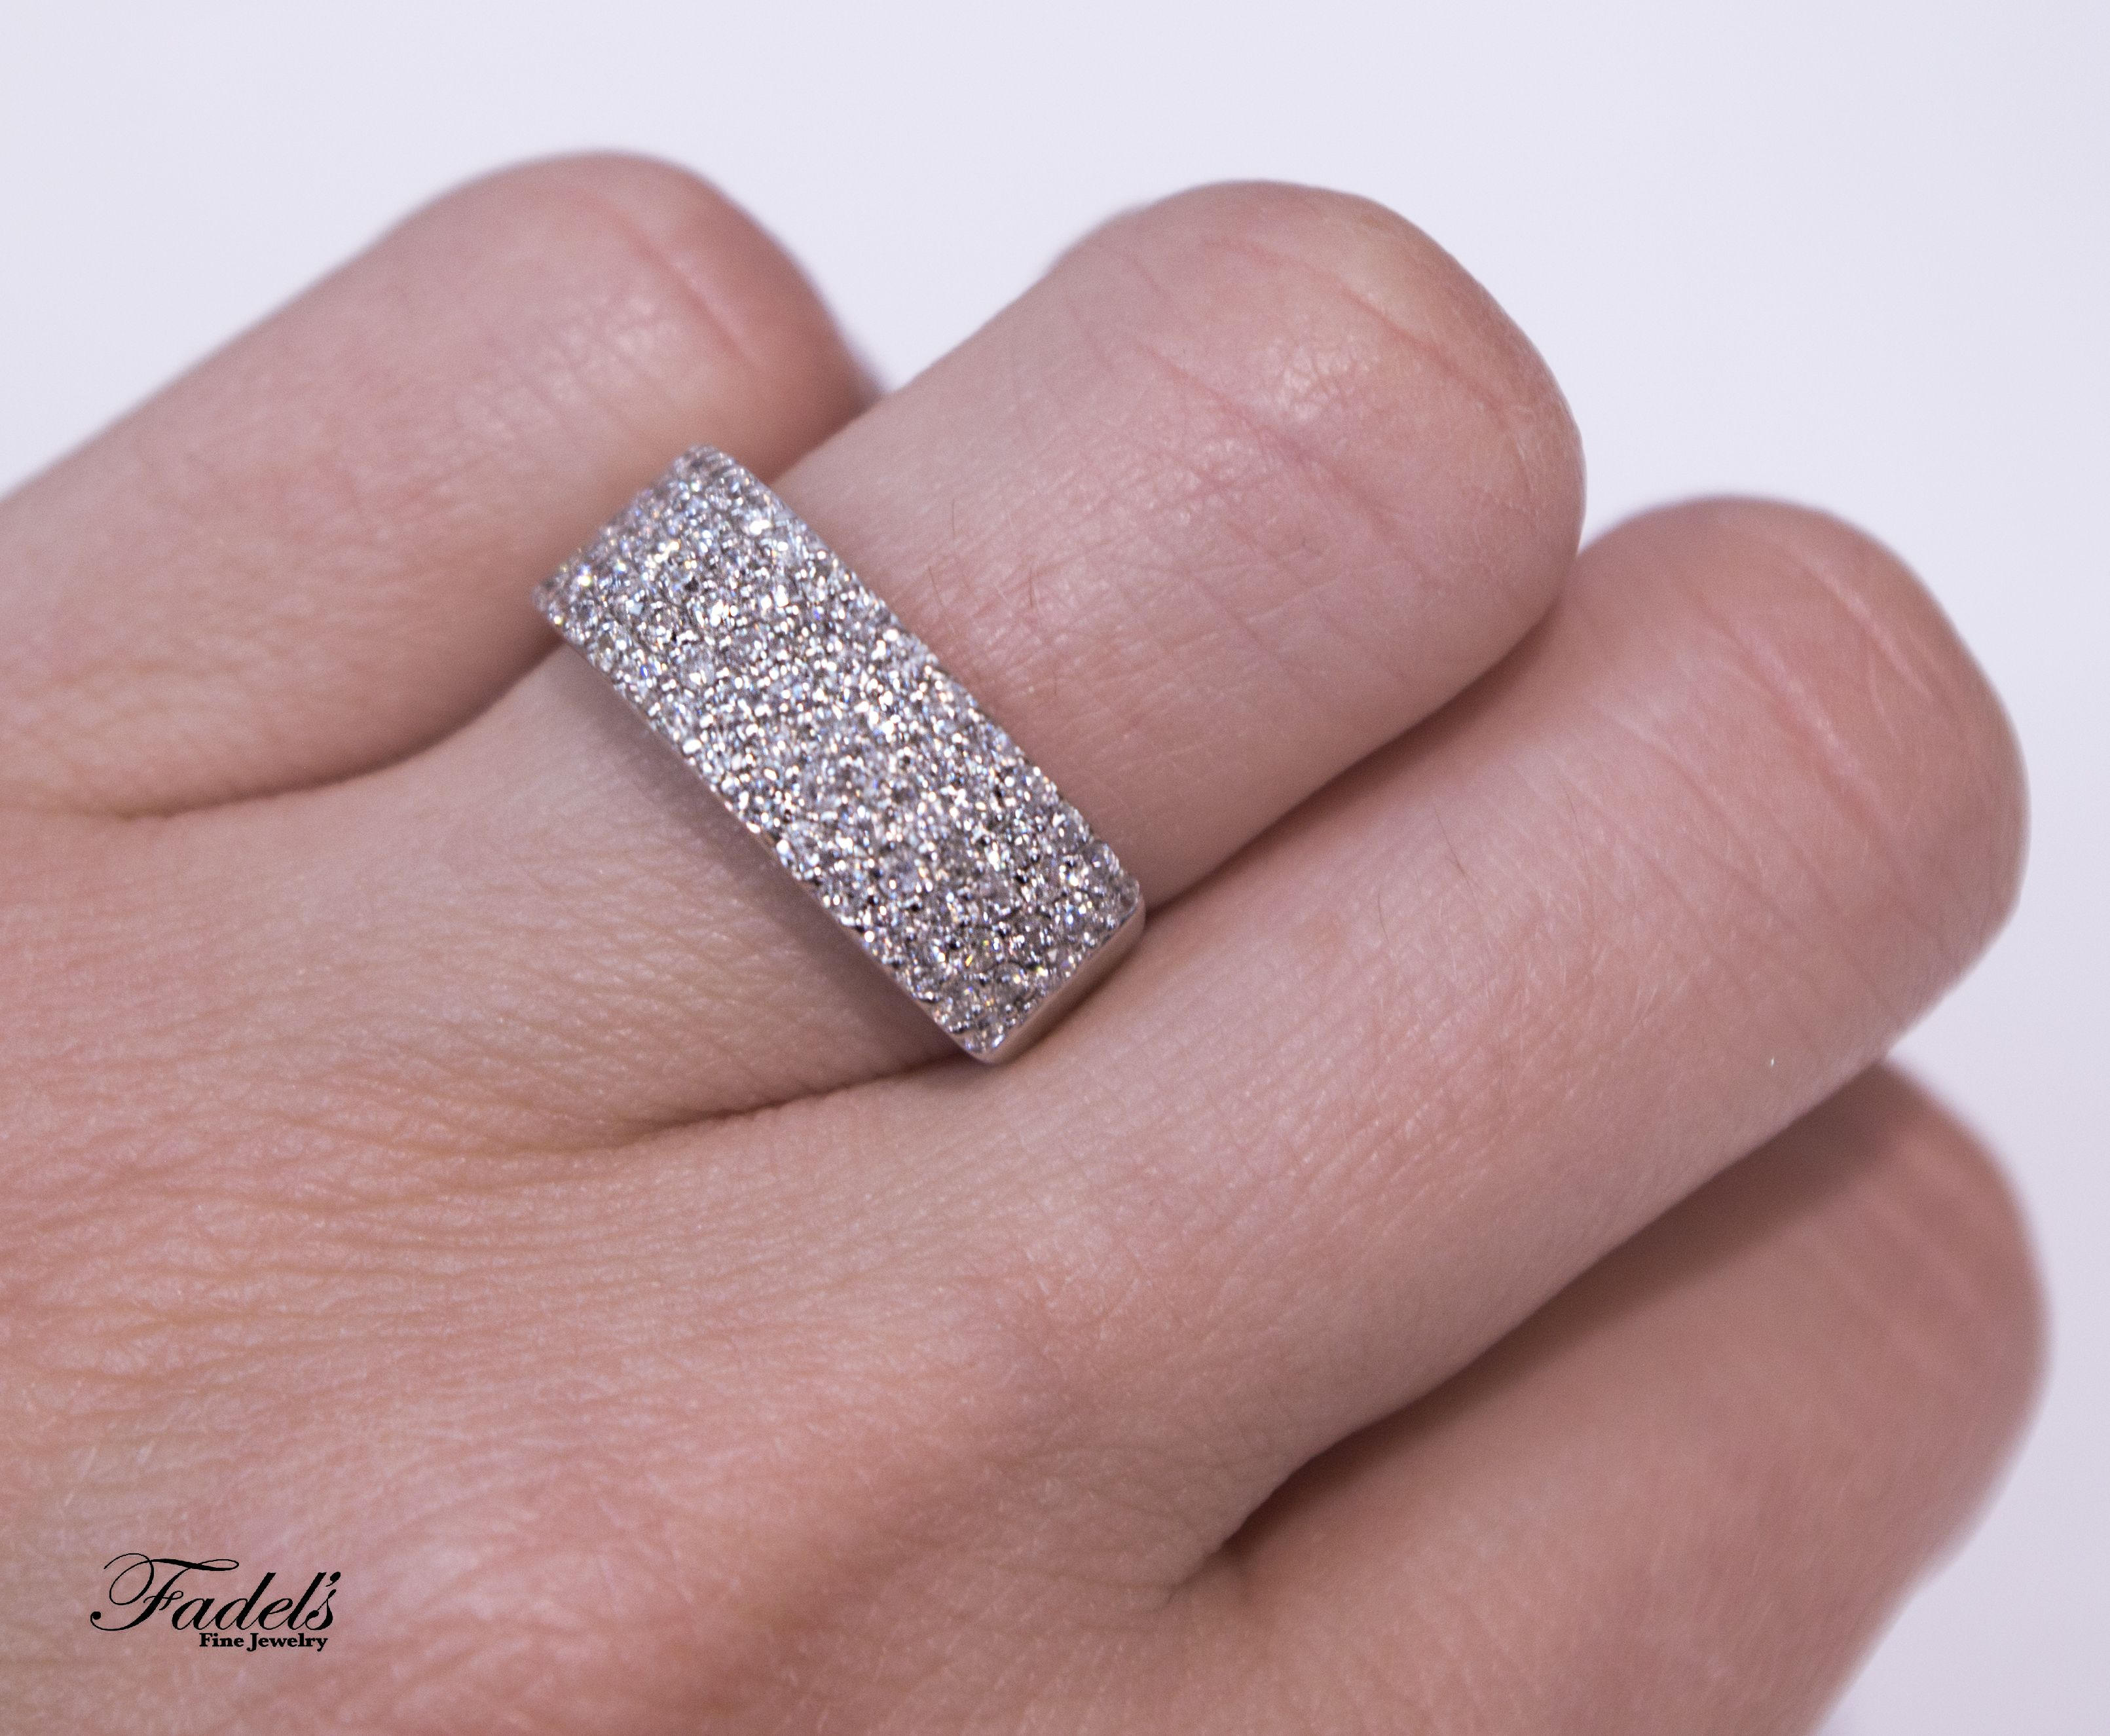 It is just a graphic of Wide Diamond Band in 42K White Gold! #Weddings #Engagements